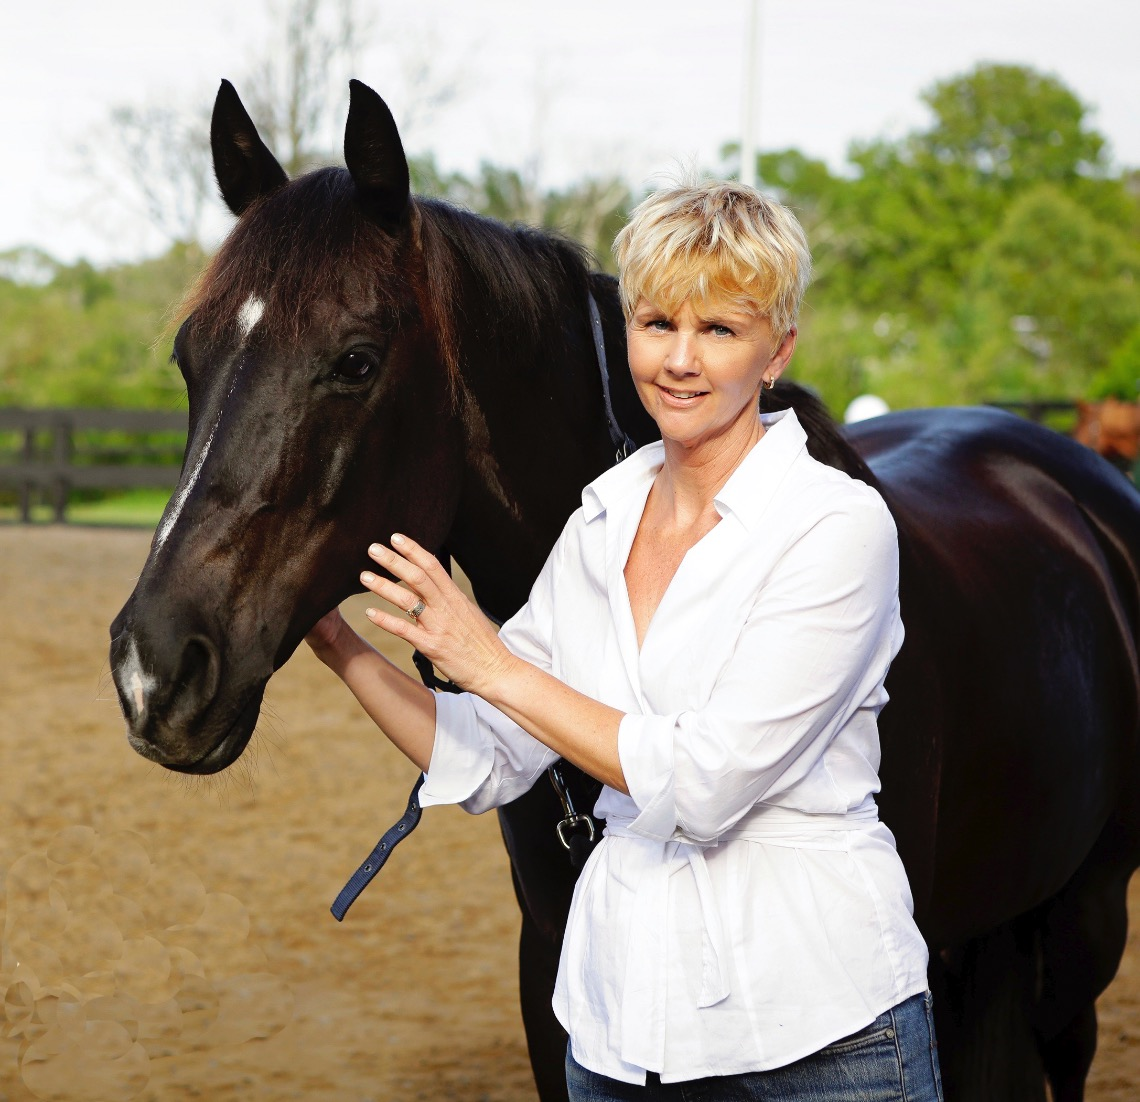 Equine Assisted Learning Calgary Ontario Australia